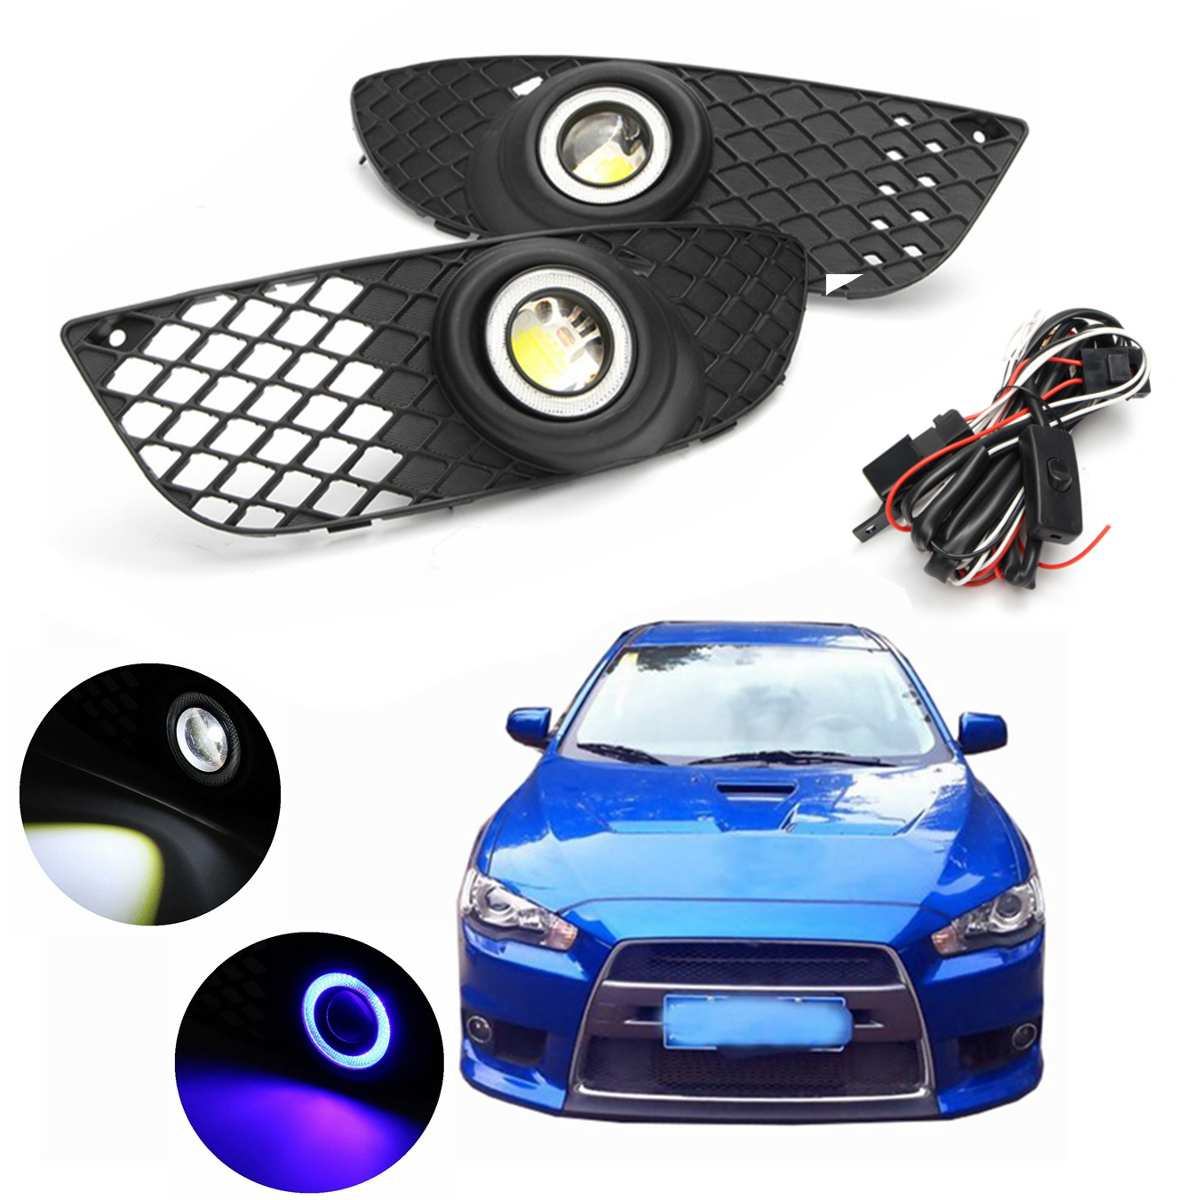 Pair 12V Black Housing Fog Light For Mitsubishi Lancer 2008-2014 Front Bumper Grille Driving Fog Lamp With Wiring Harness Switch